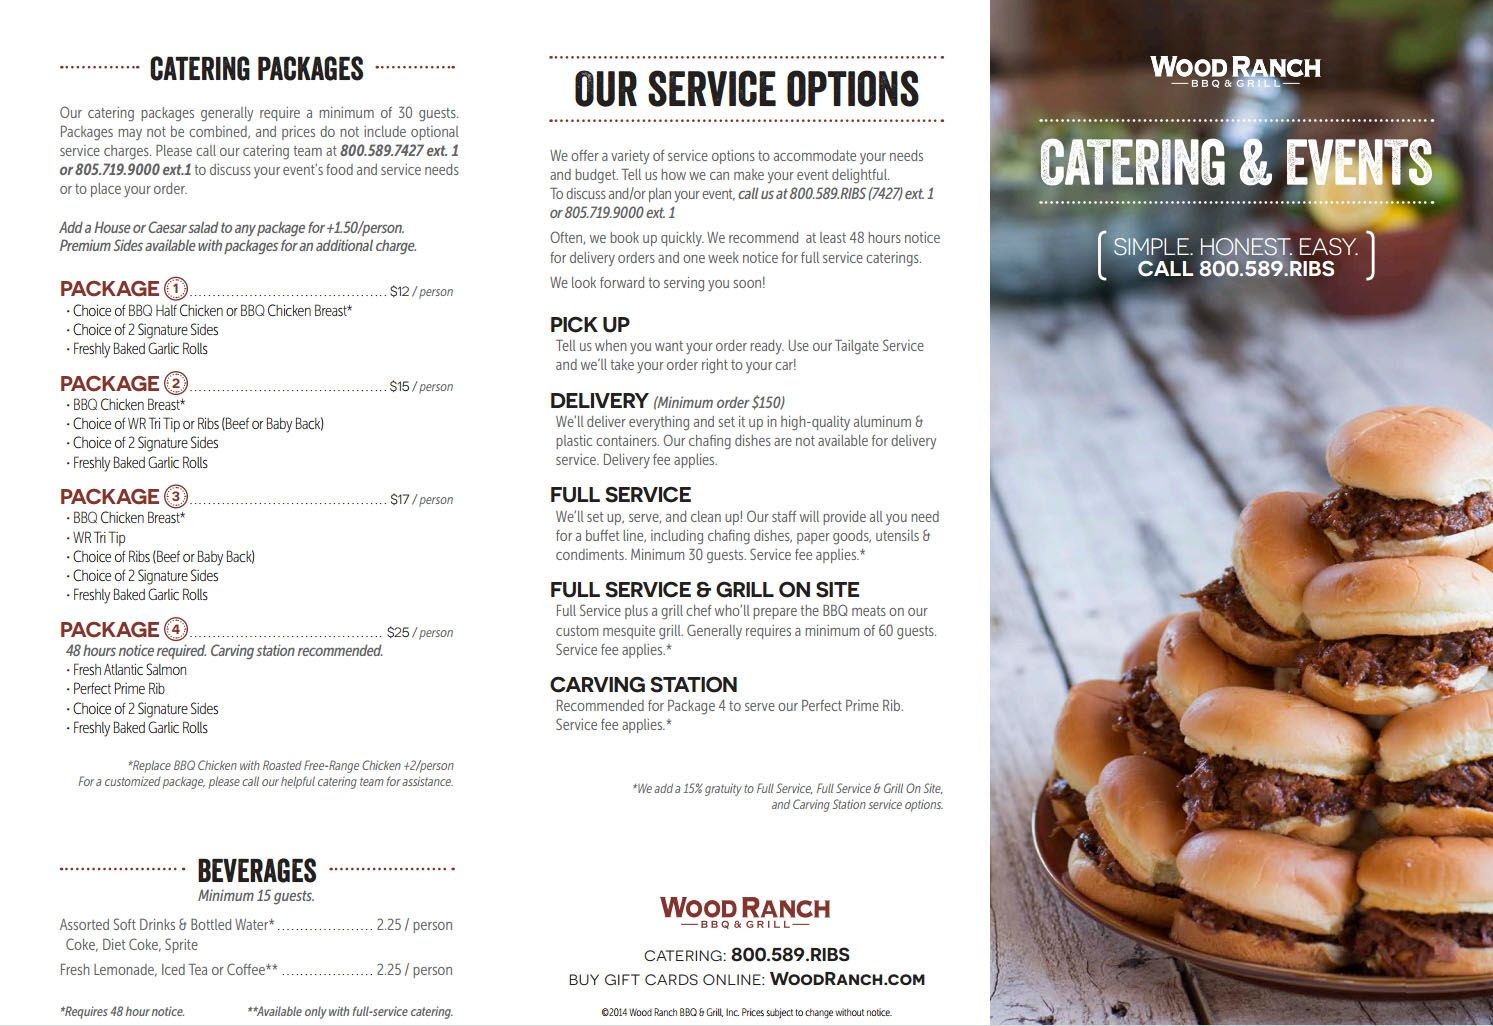 Wood Ranch Catering Menu WB Designs - Wood Ranch Catering Menu WB Designs